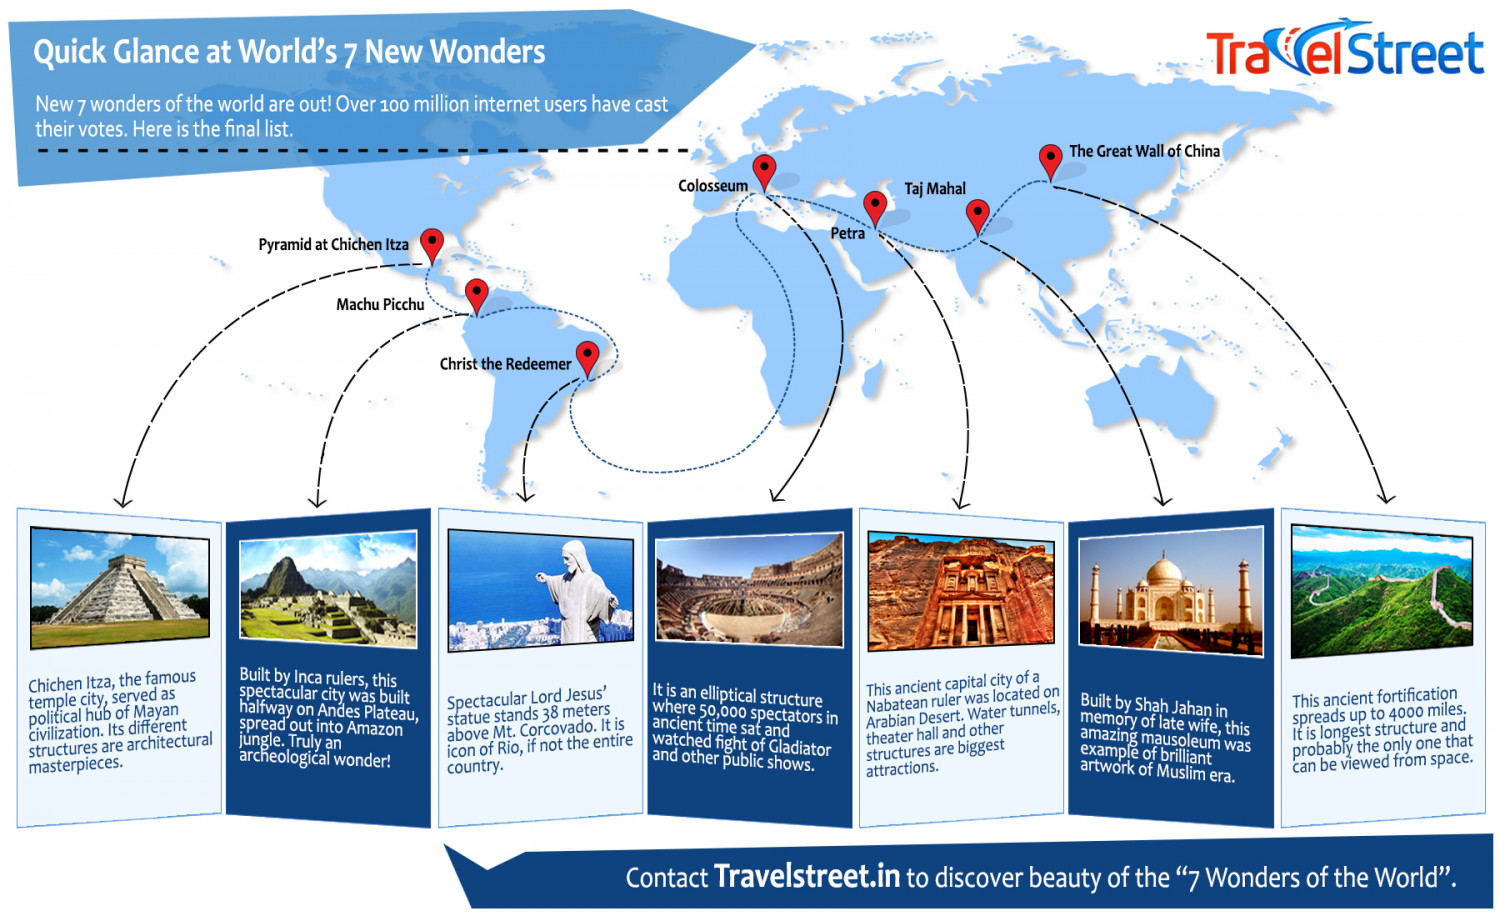 Quick Glance At Worlds 7 New Wonders Infographic